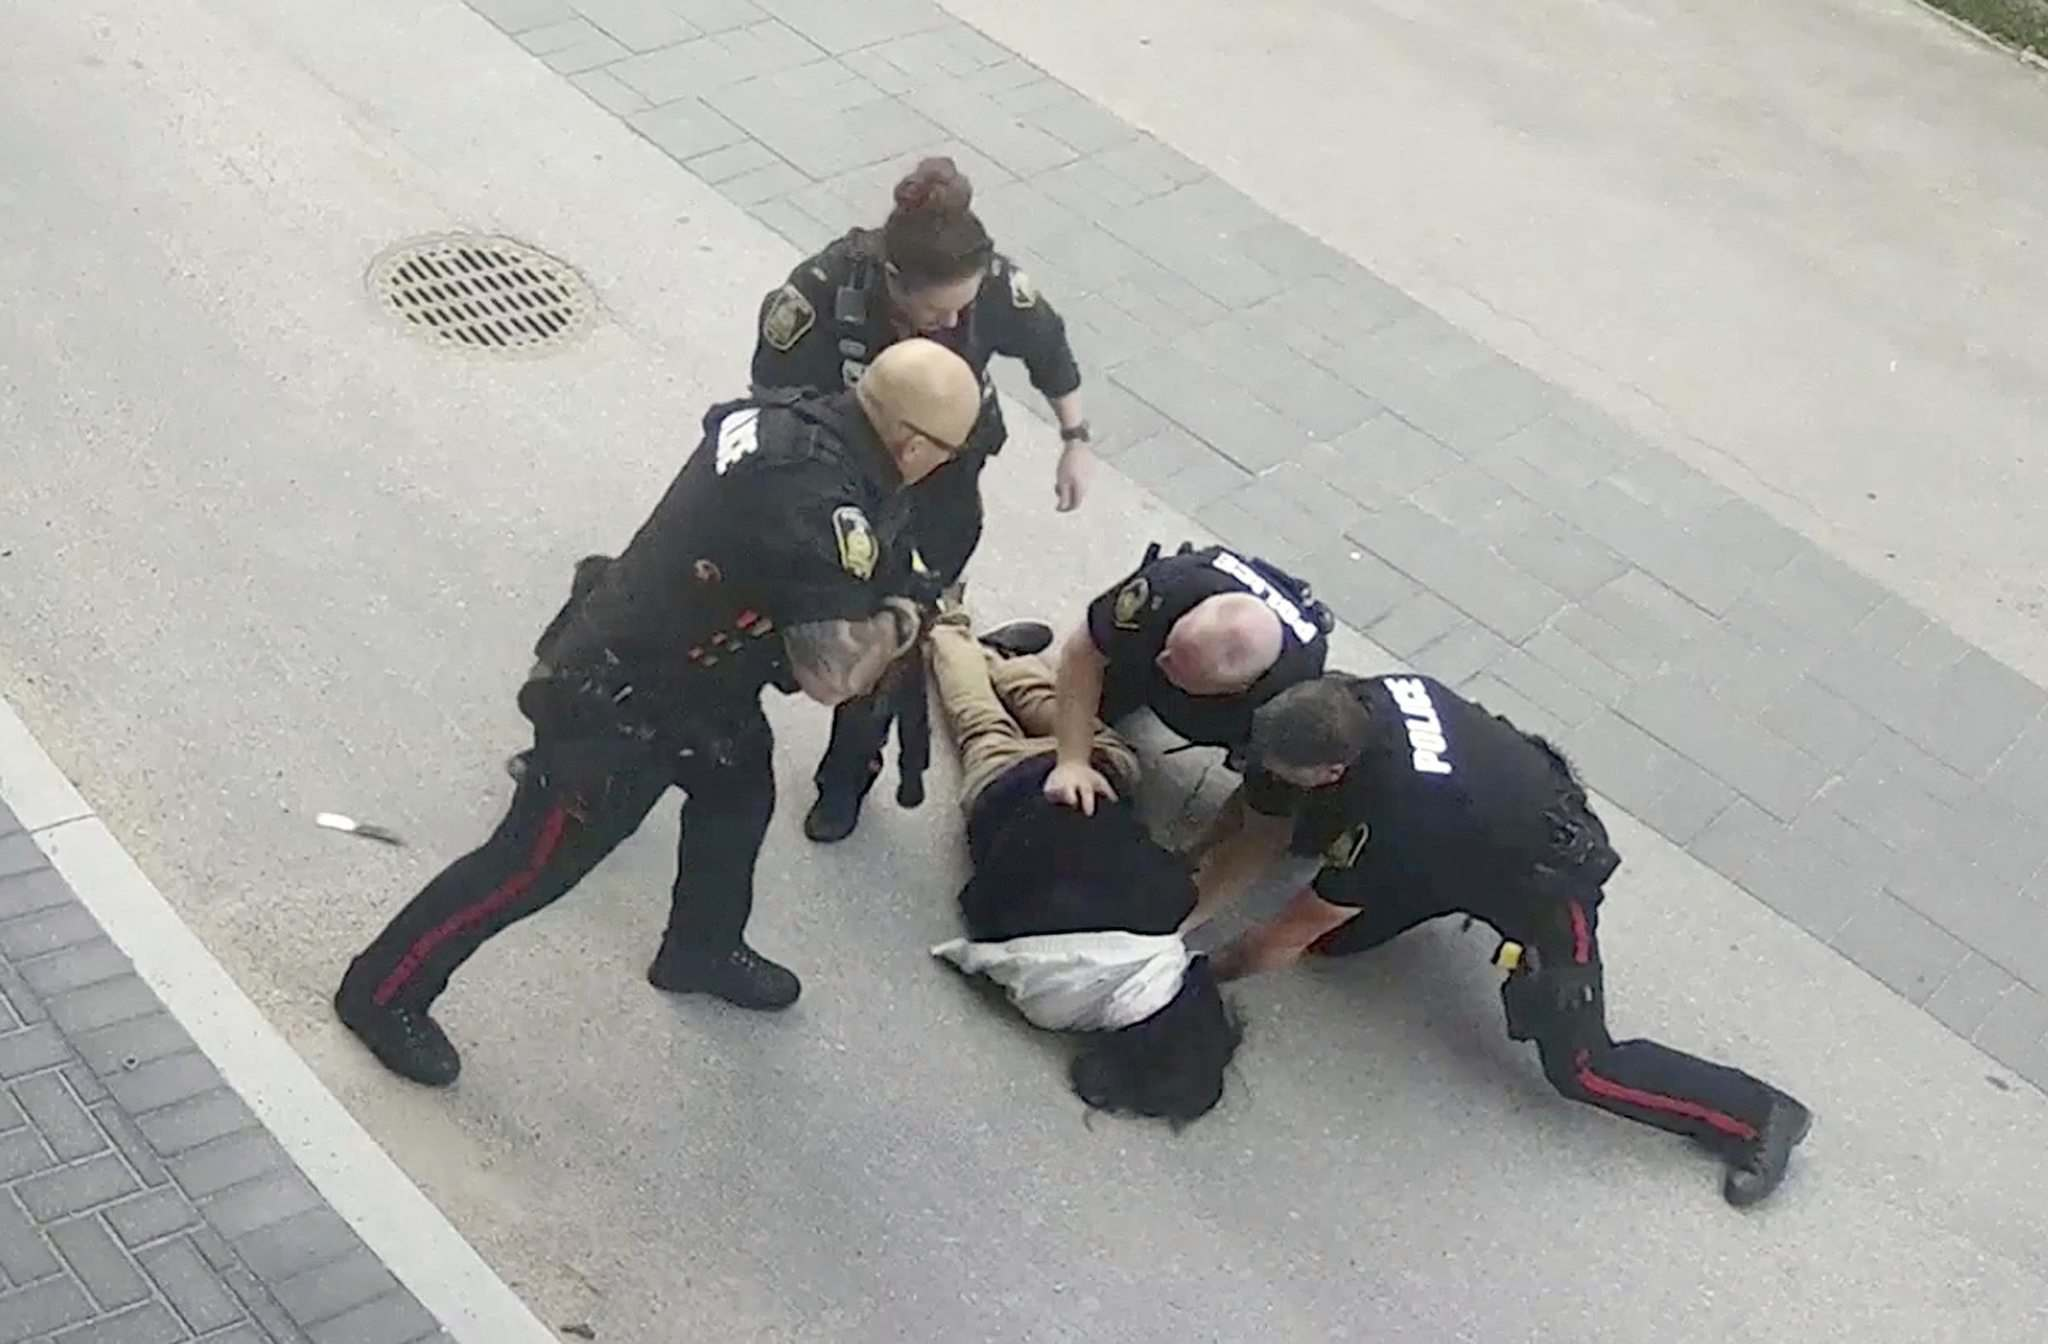 Police were criticized for using too much forced during Thursday's arrest of this suspect. A knife is dislodged from the man (seen on road left of officer) during the takedown. (Winnipeg Free Press)